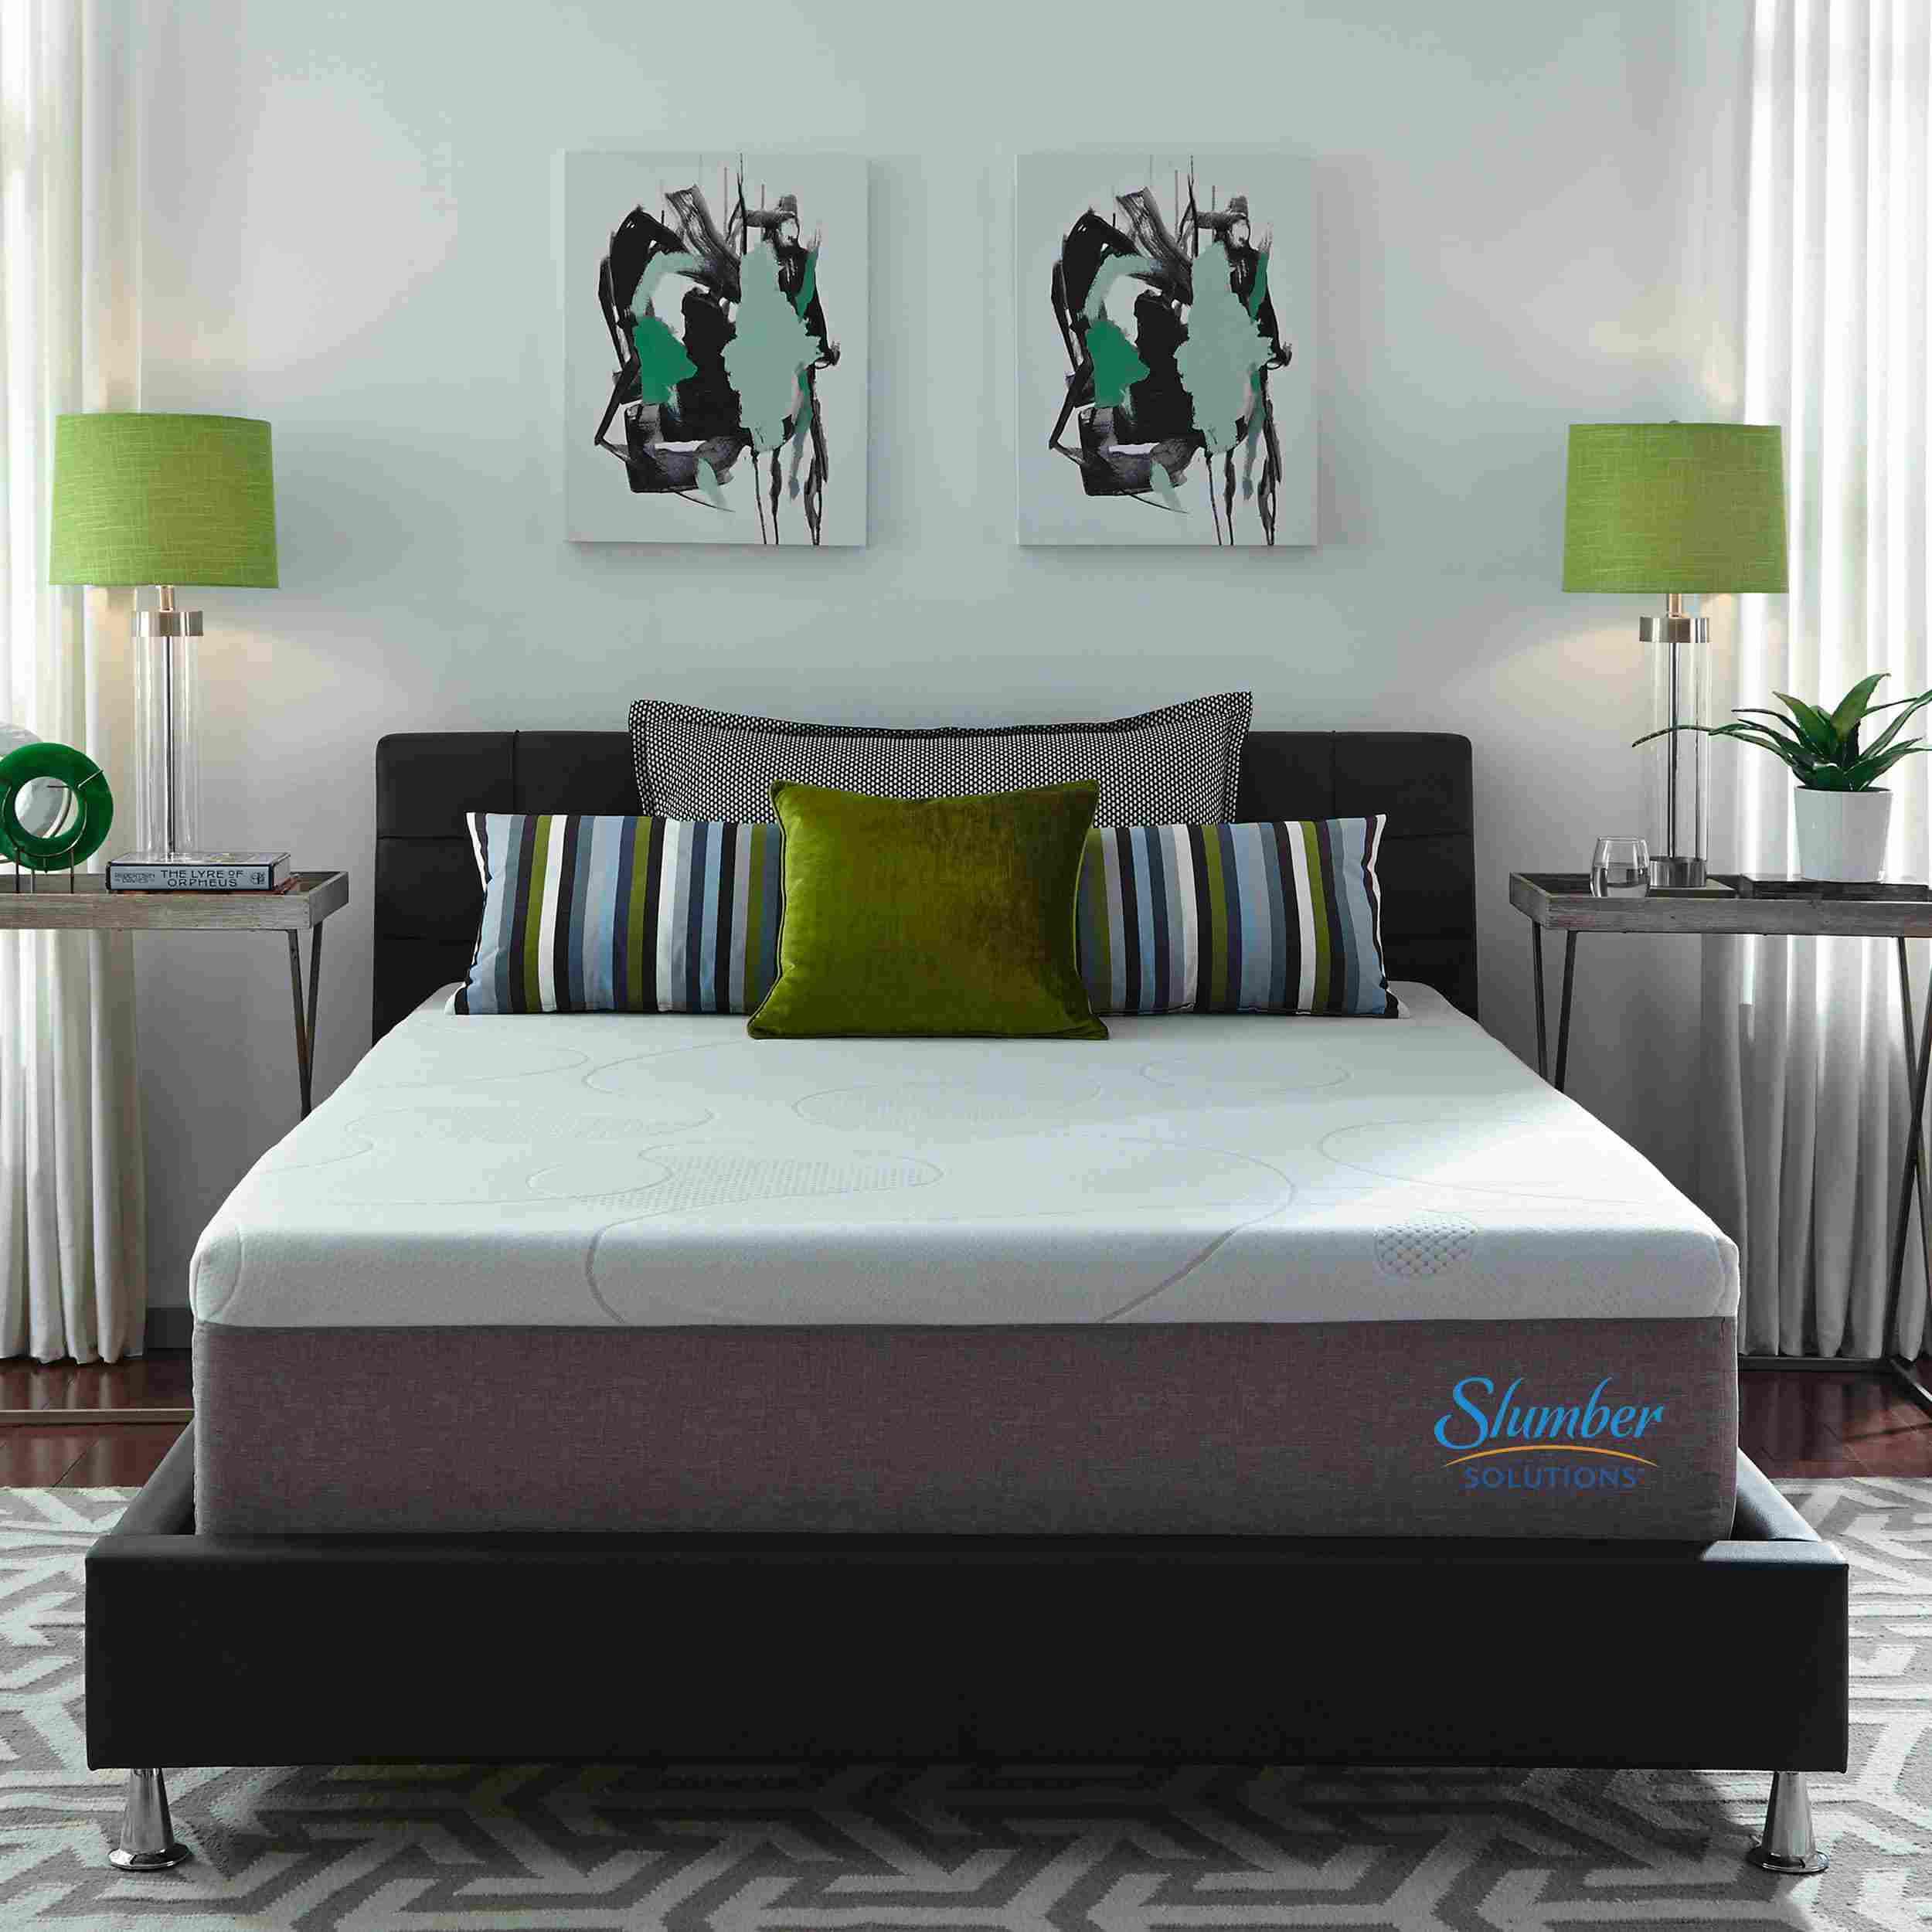 10 Ultra Small Bedrooms With King Size Beds: The 10 Best Places To Buy A Mattress In 2020